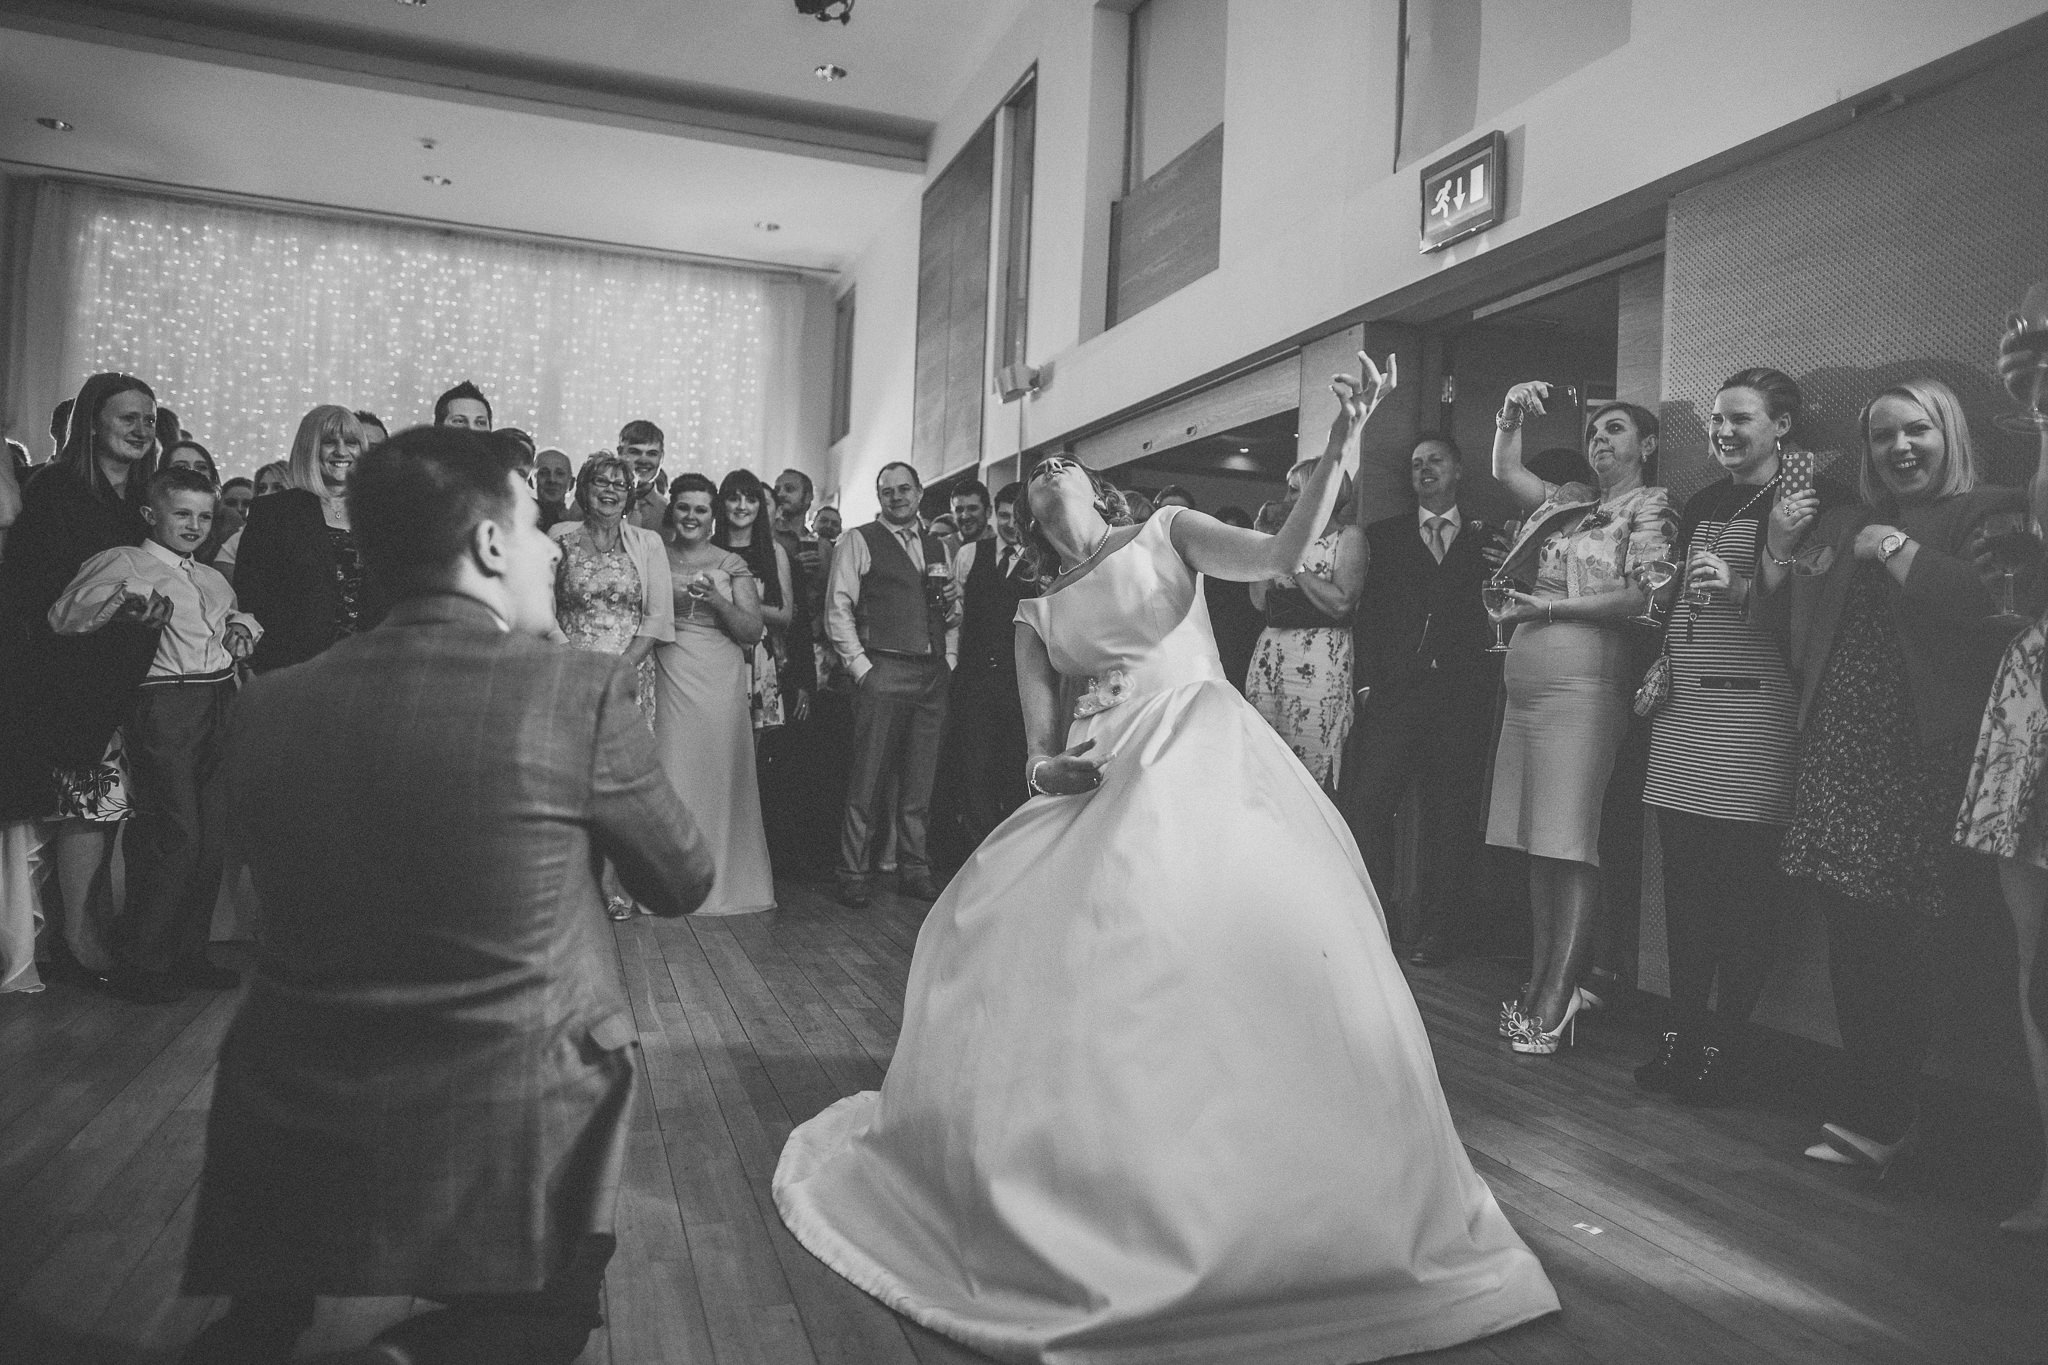 paul-marbrook-best-wedding-photographer-north-wales-091016